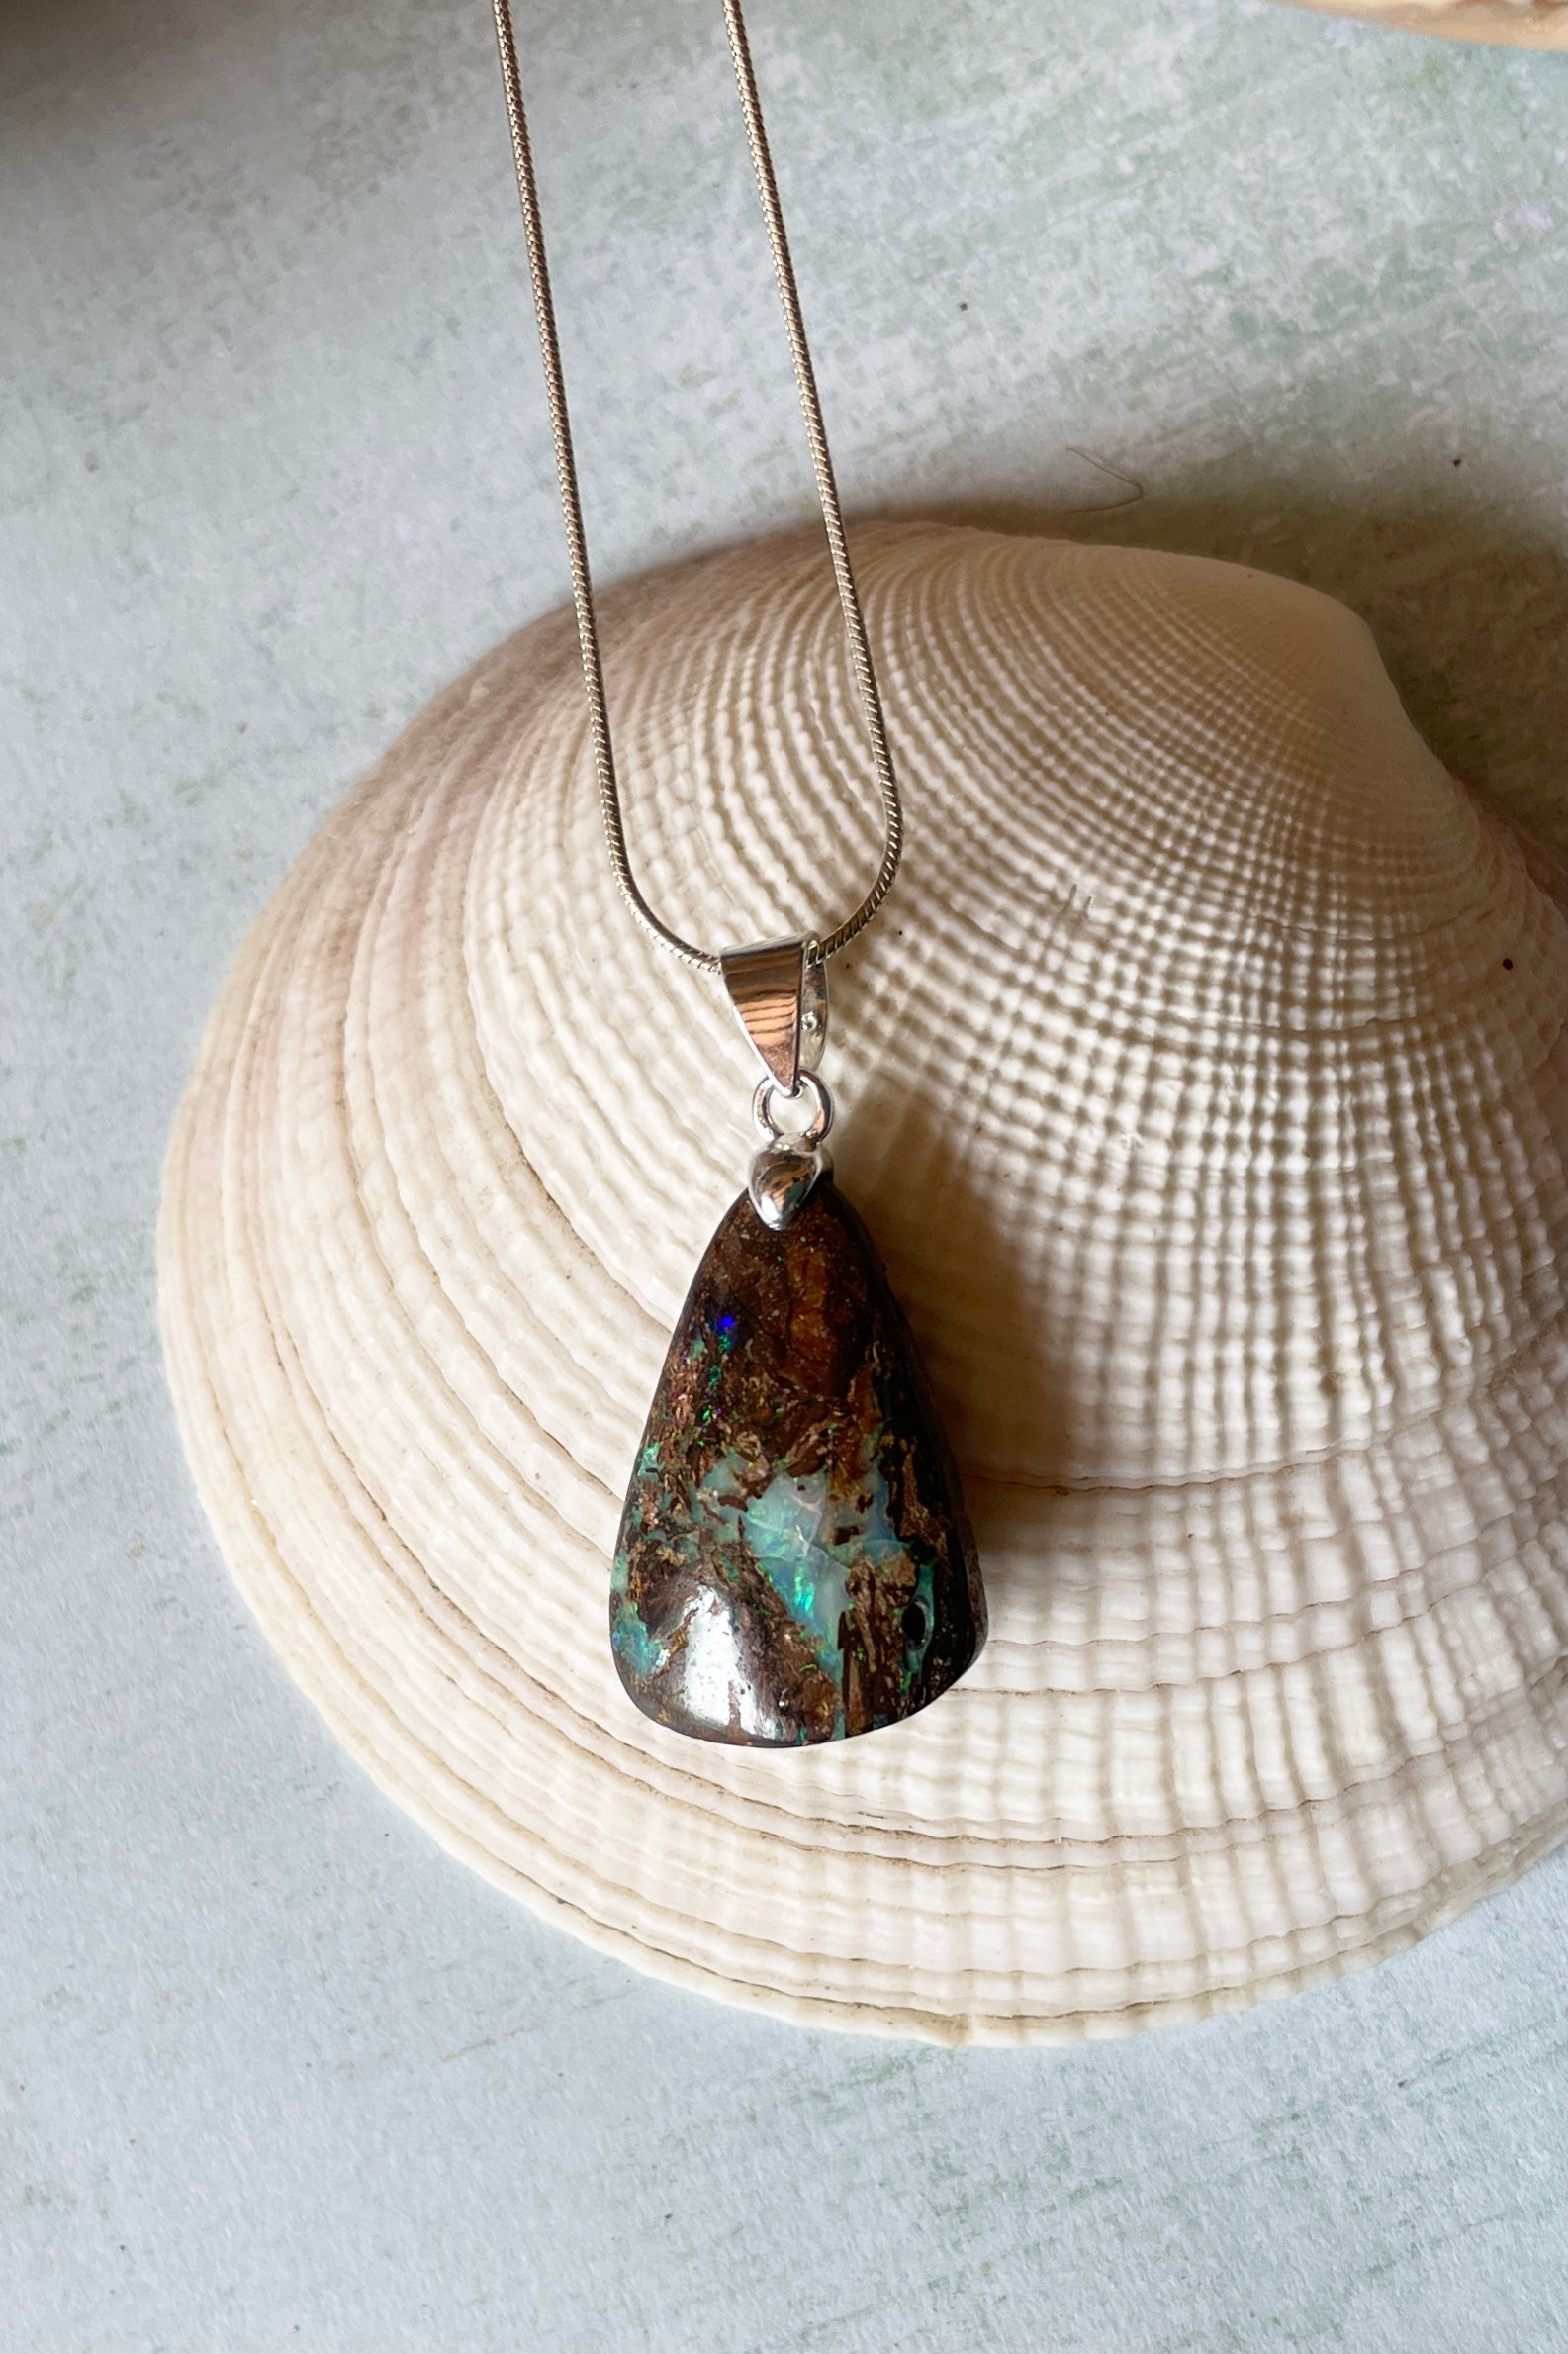 Australian opal pendant on a chain, boulder opal. Mens jewellery, Australian made.